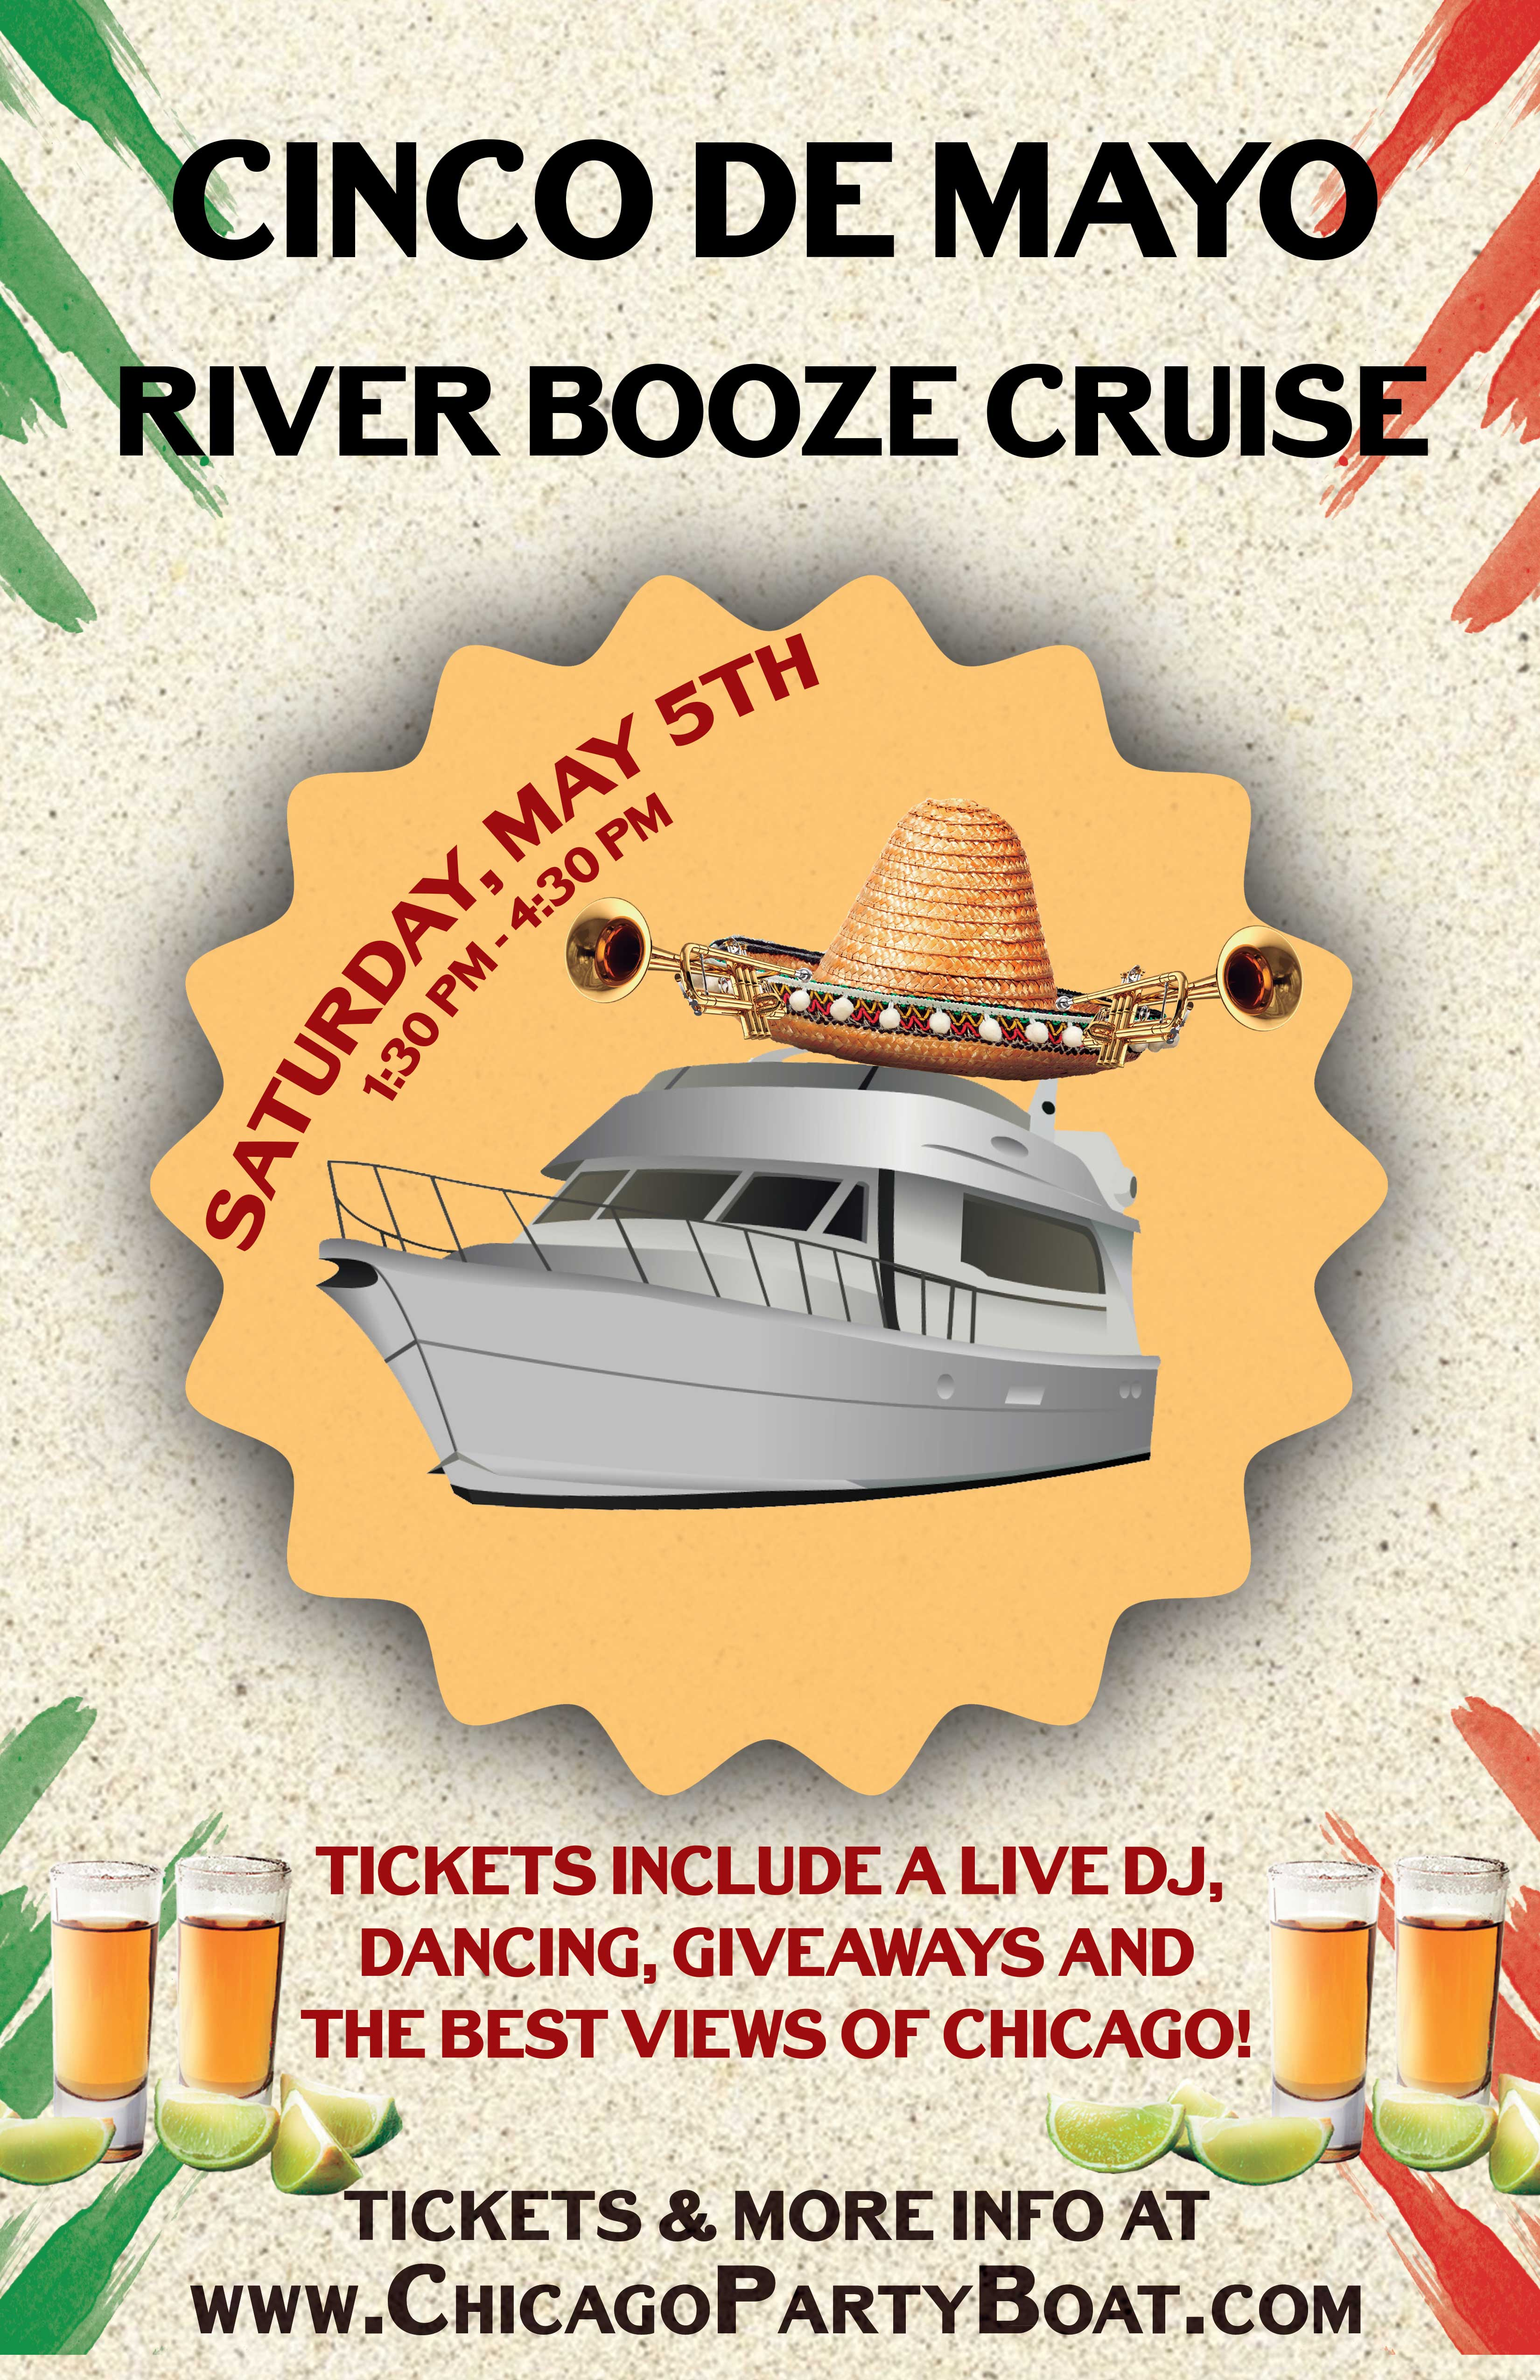 Cinco de Mayo River Booze Cruise Party - Tickets include a Live DJ, Dancing, Giveaways, and the best views of Chicago!